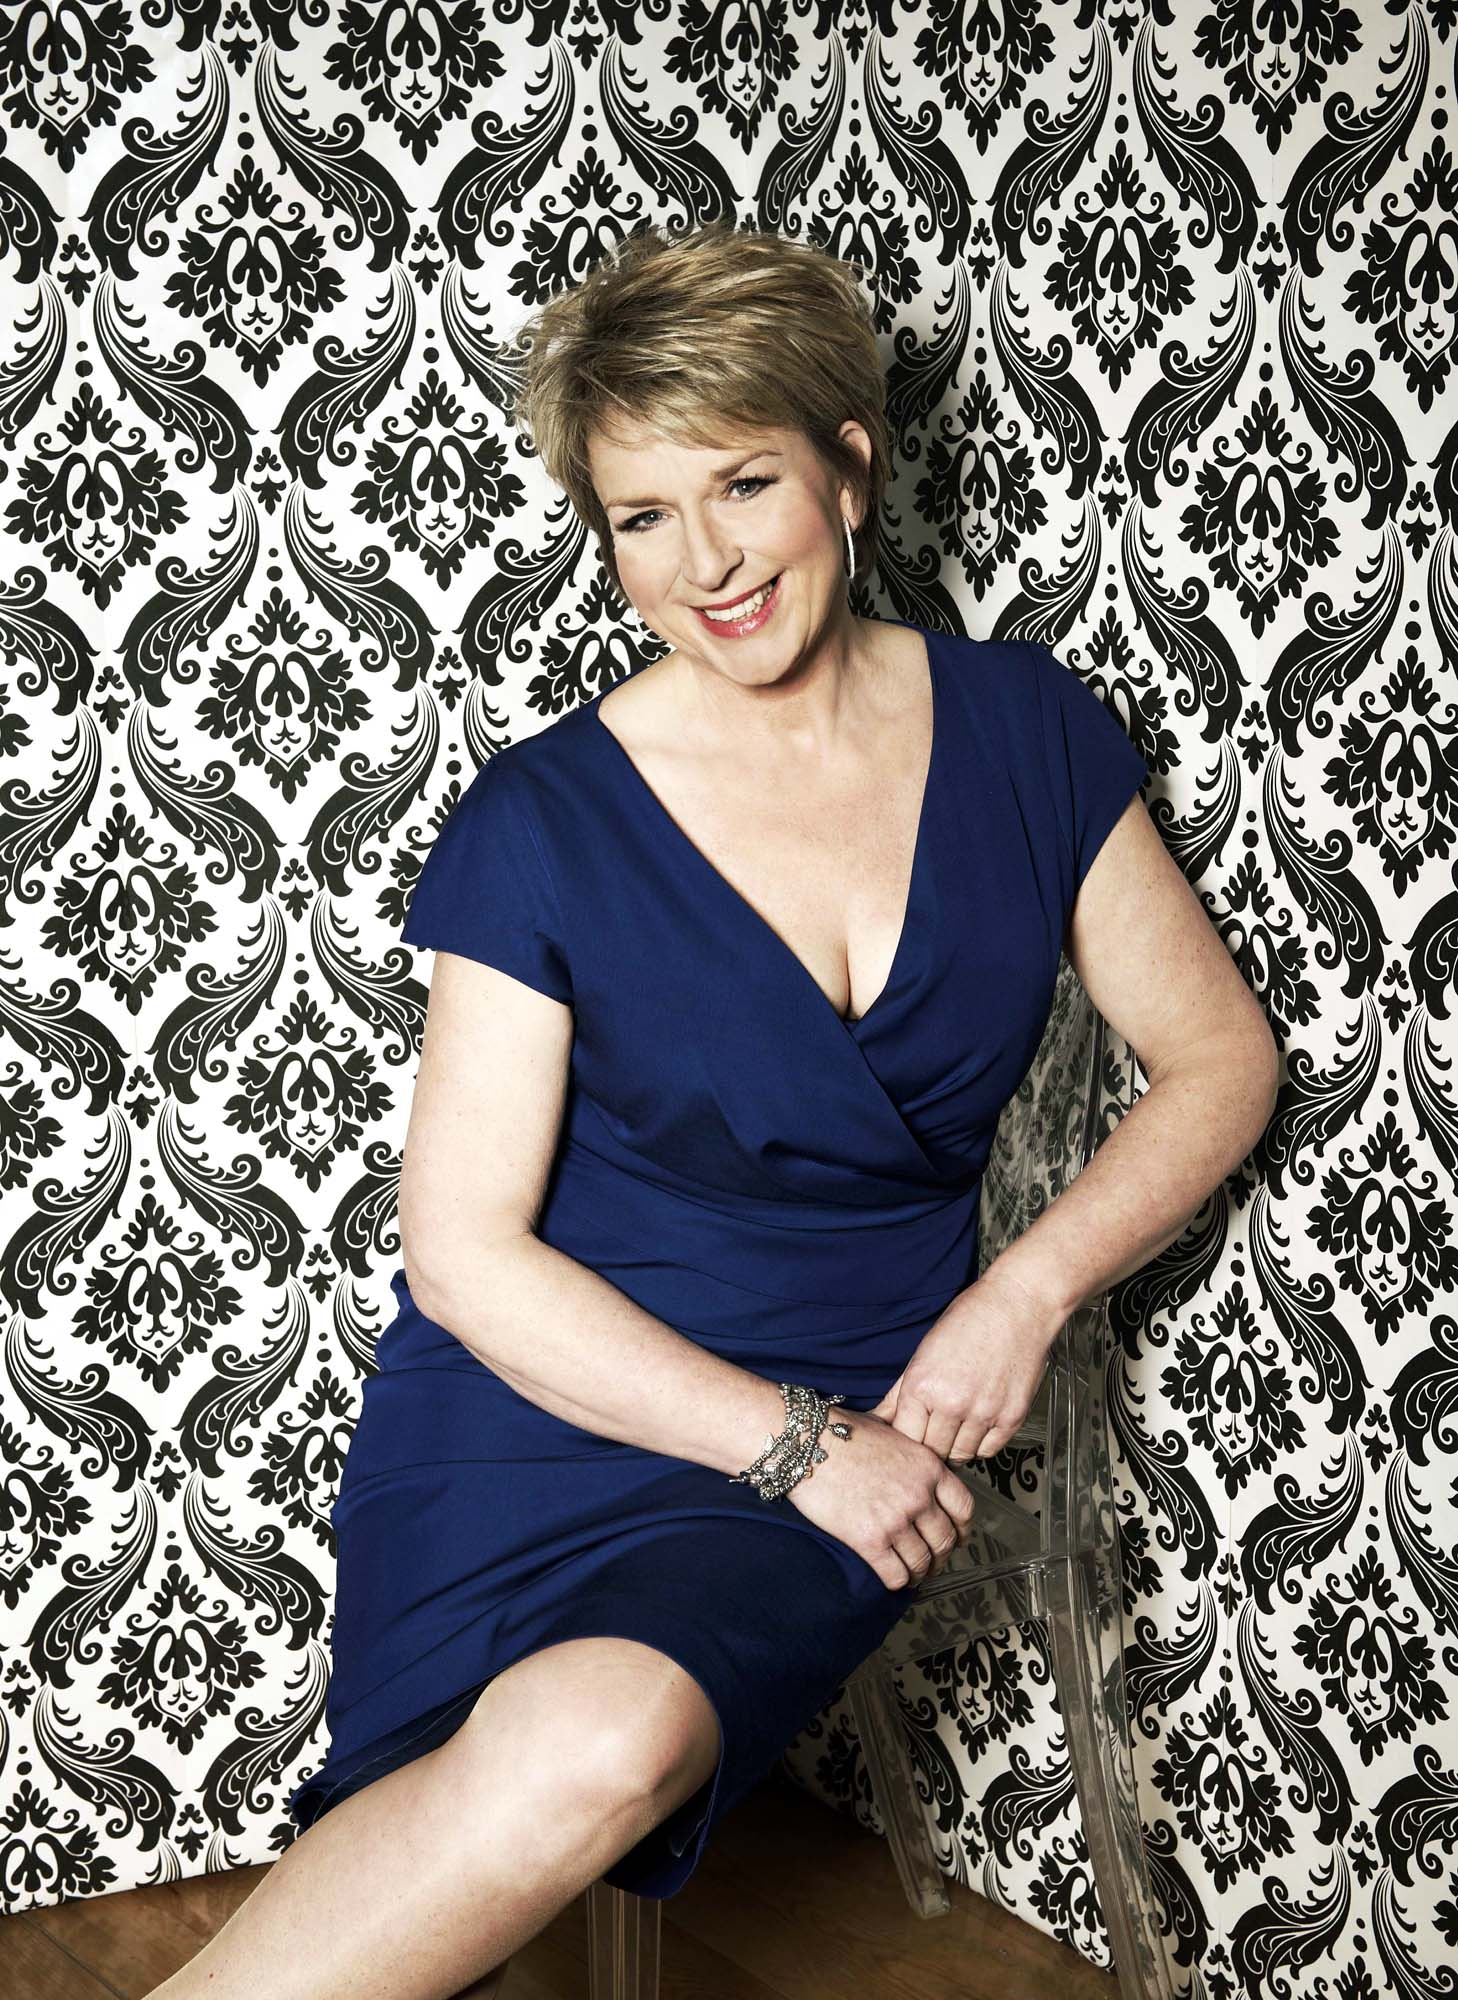 This Morning viewers call for Fern Britton to return to the show full-time after guest appearance forecasting